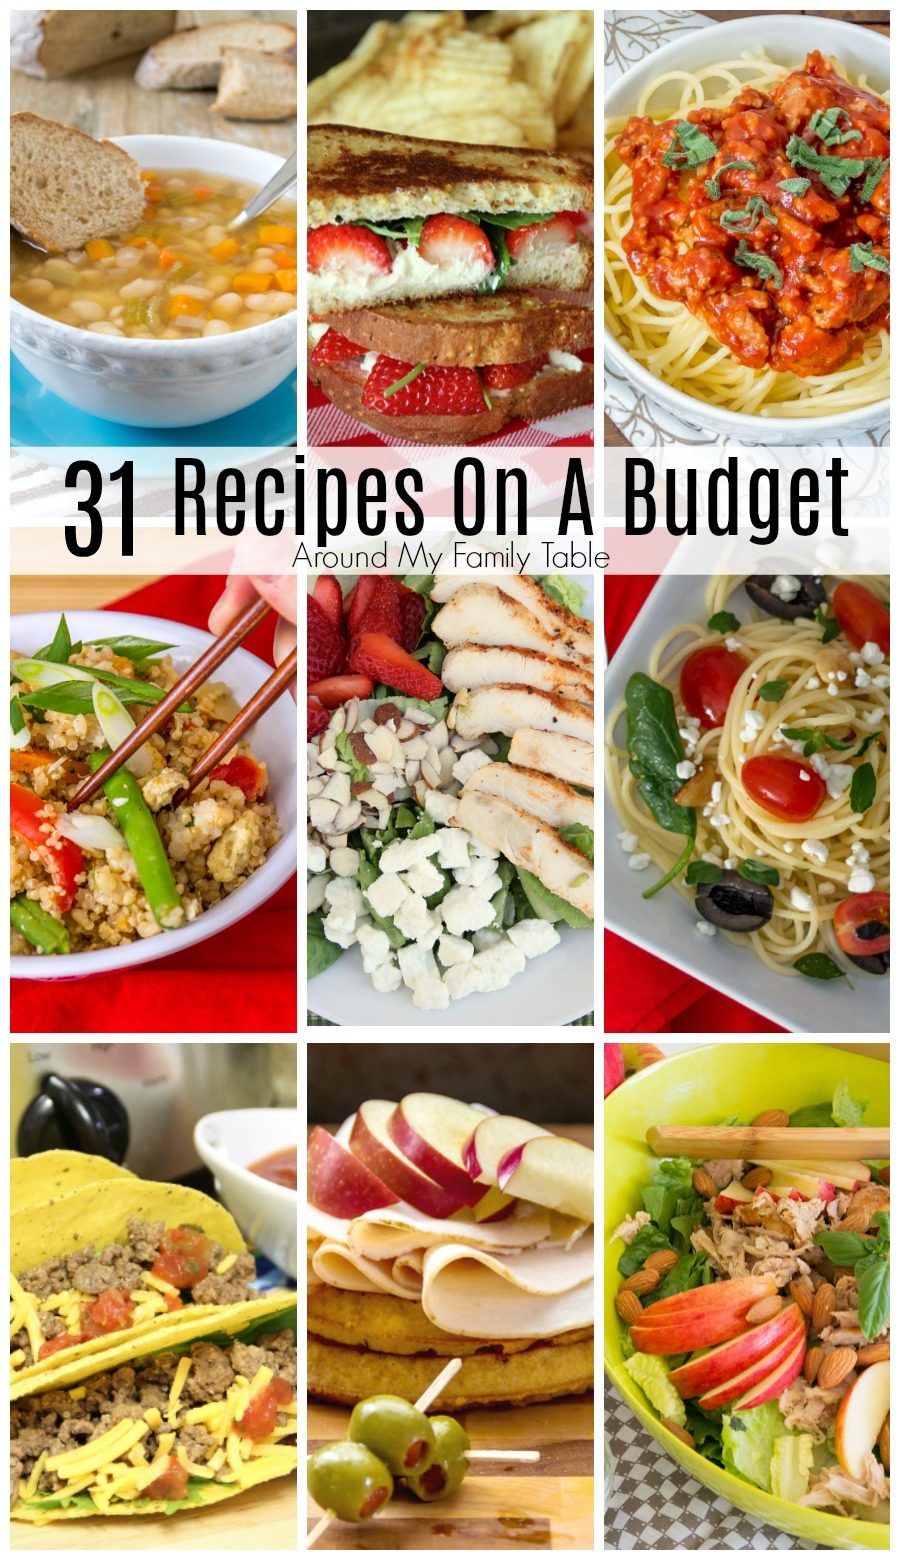 Eat healthy on a tight budget with these 31 Recipes on a Budget.  A month's worth of budget friendly recipes that you'll feel good about feeding your loved ones that won't break the bank.